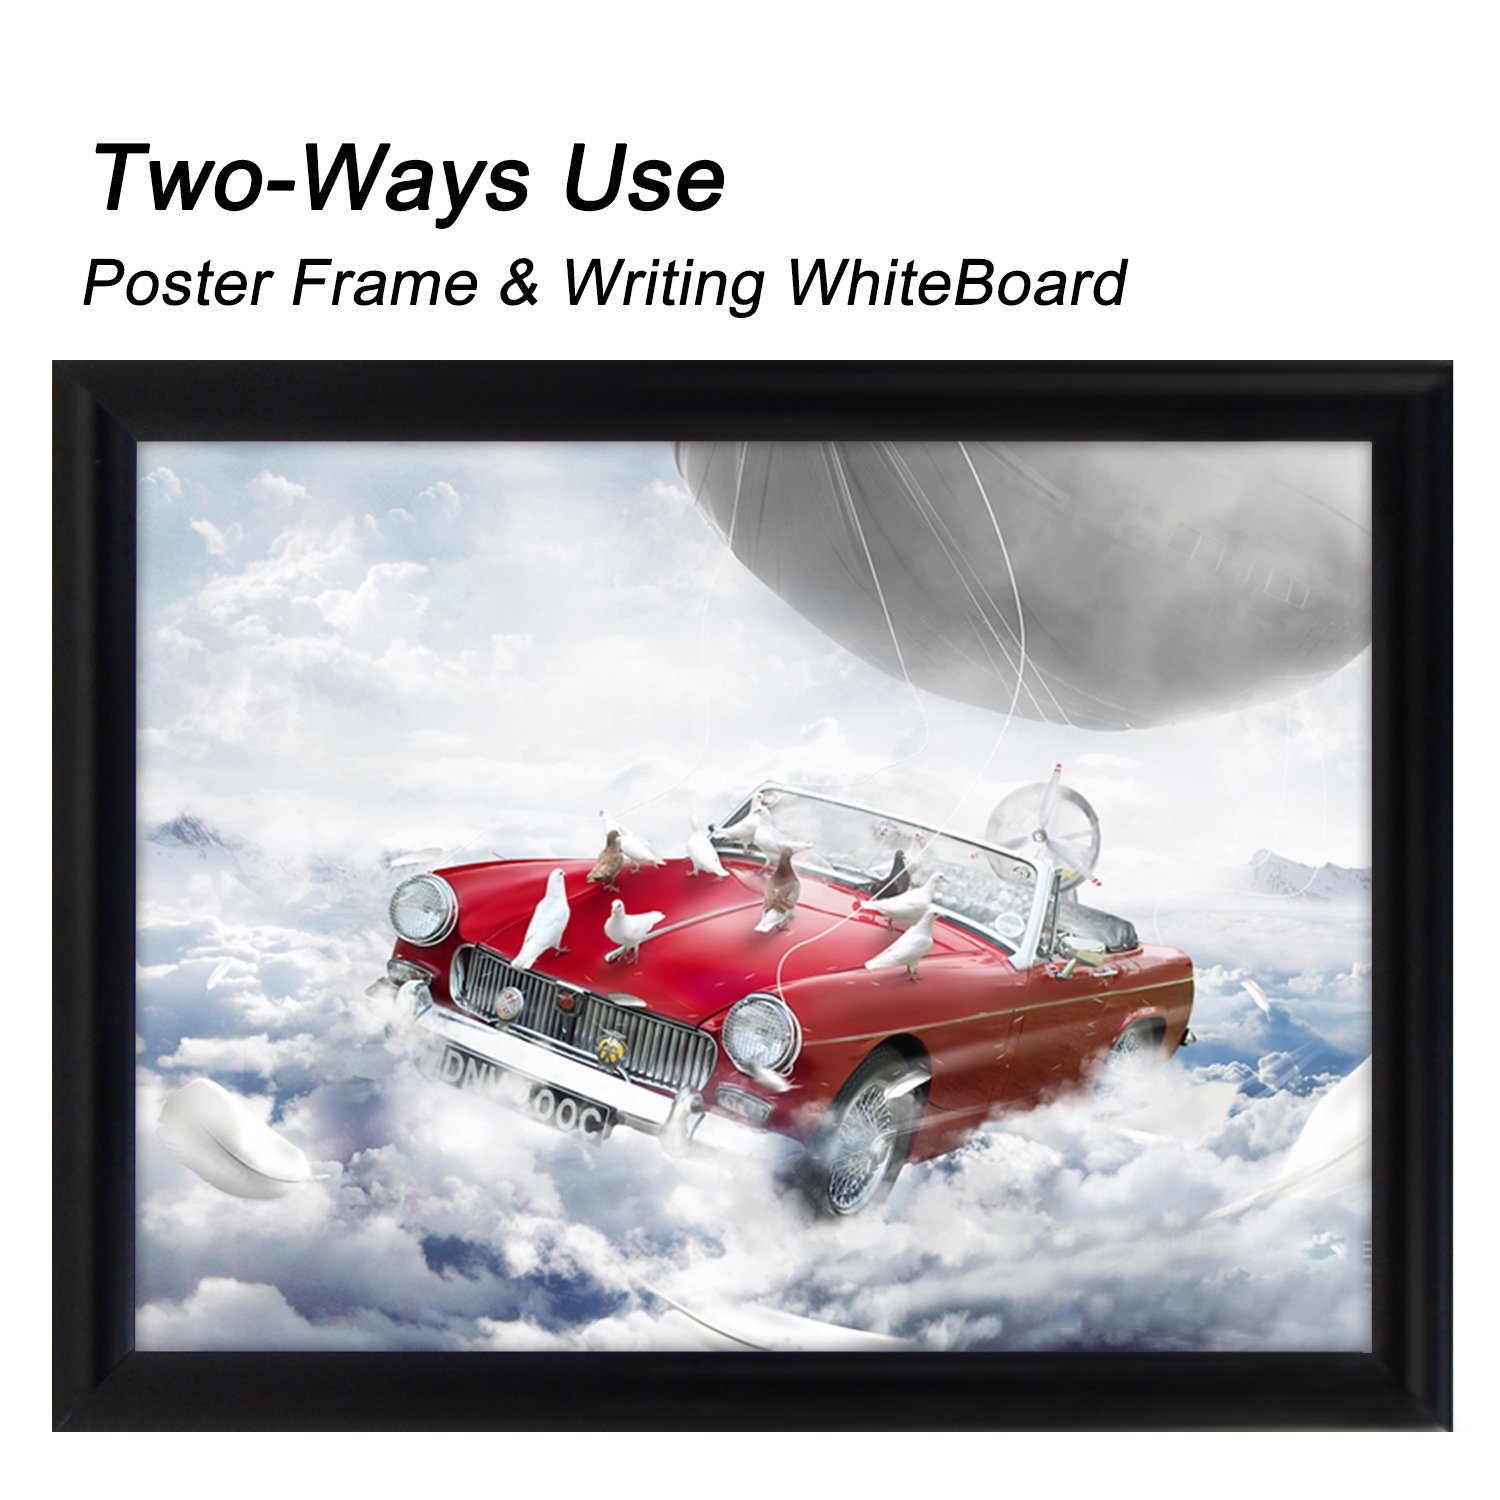 "T-Sign 24 x 36 inches Aluminum Snap Poster Frame Inclueds White Dry Earse Surface, 1"" Profile Wall Mounted Black - Two Use Methods, for More Display"